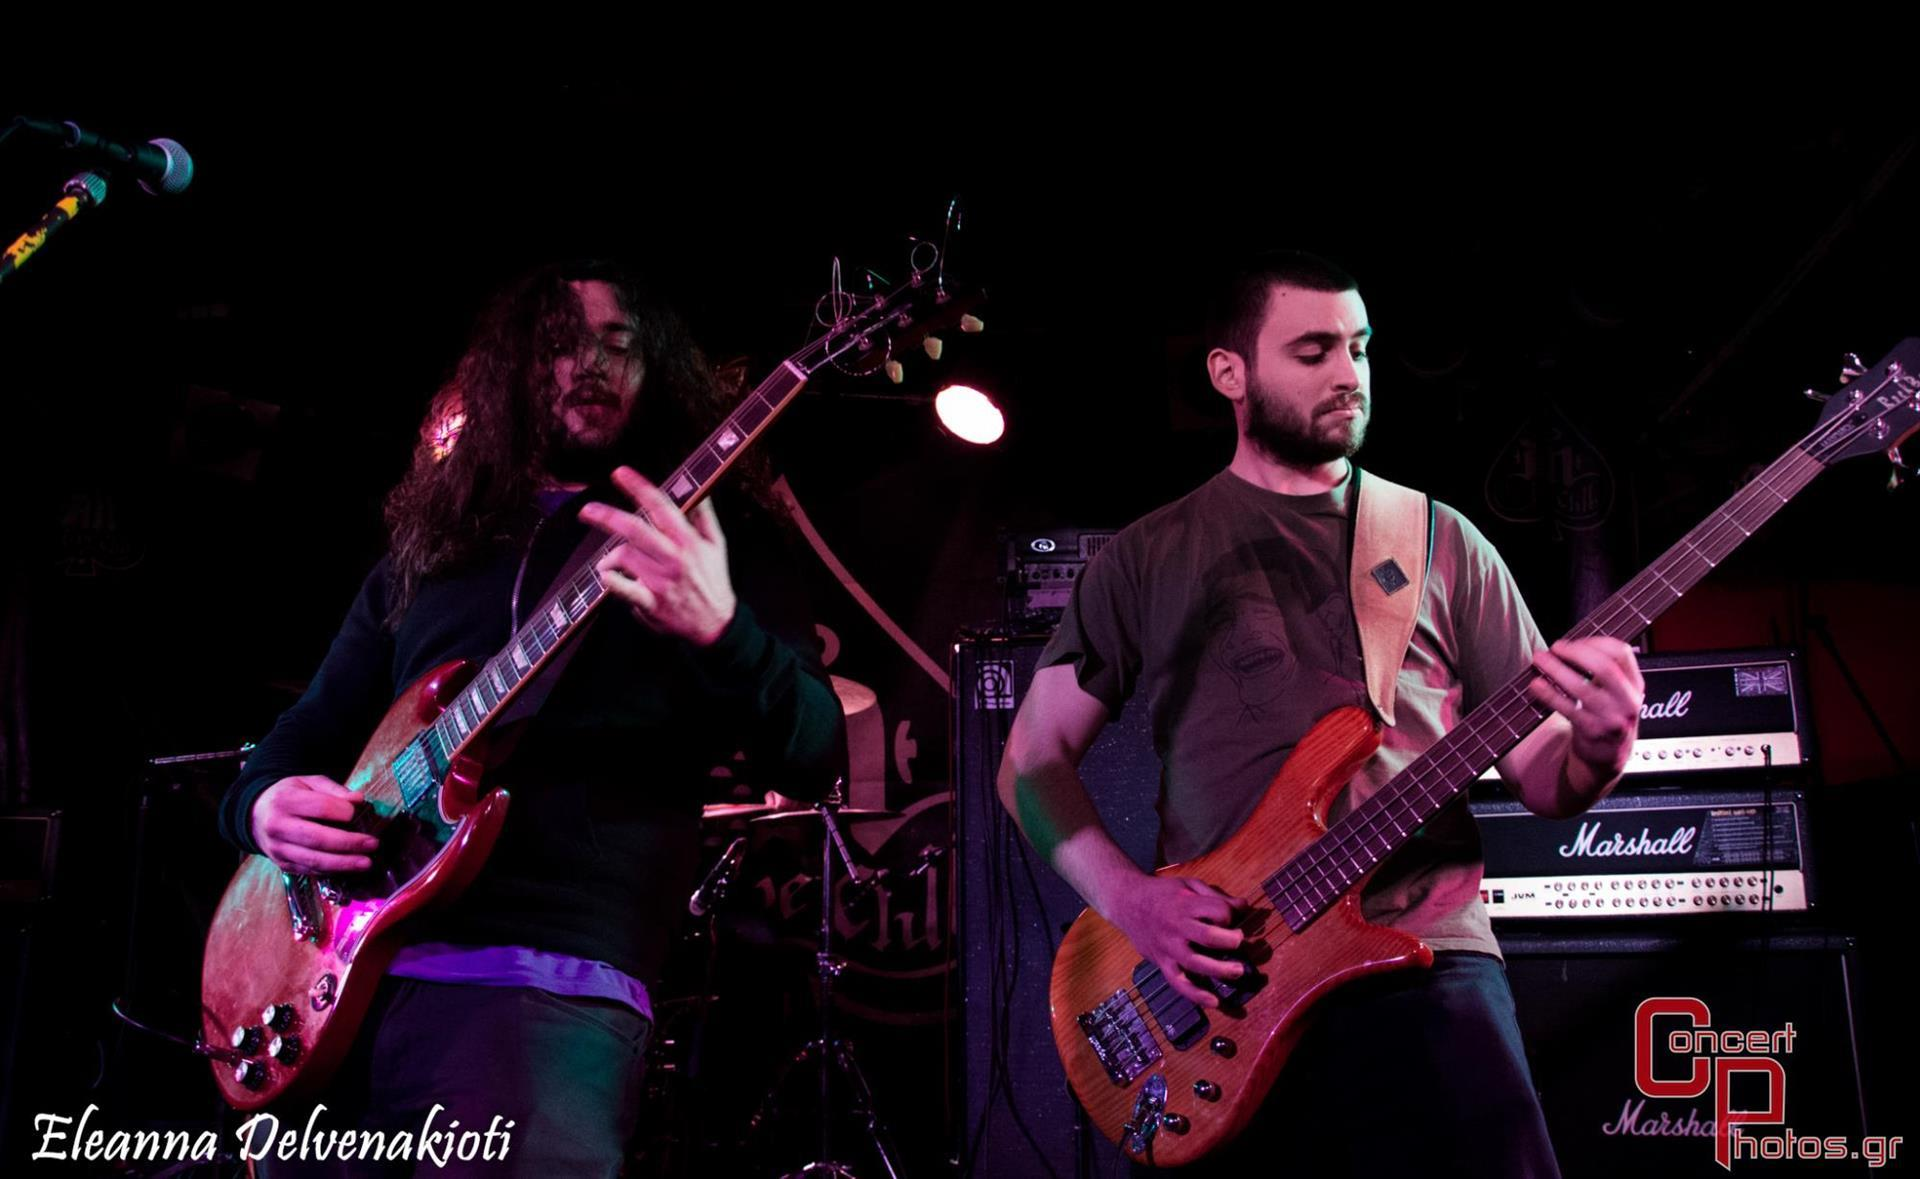 Battle Of The Bands Athens - Leg 4-test photographer:  - Battle Of The Bands-20150208-221634